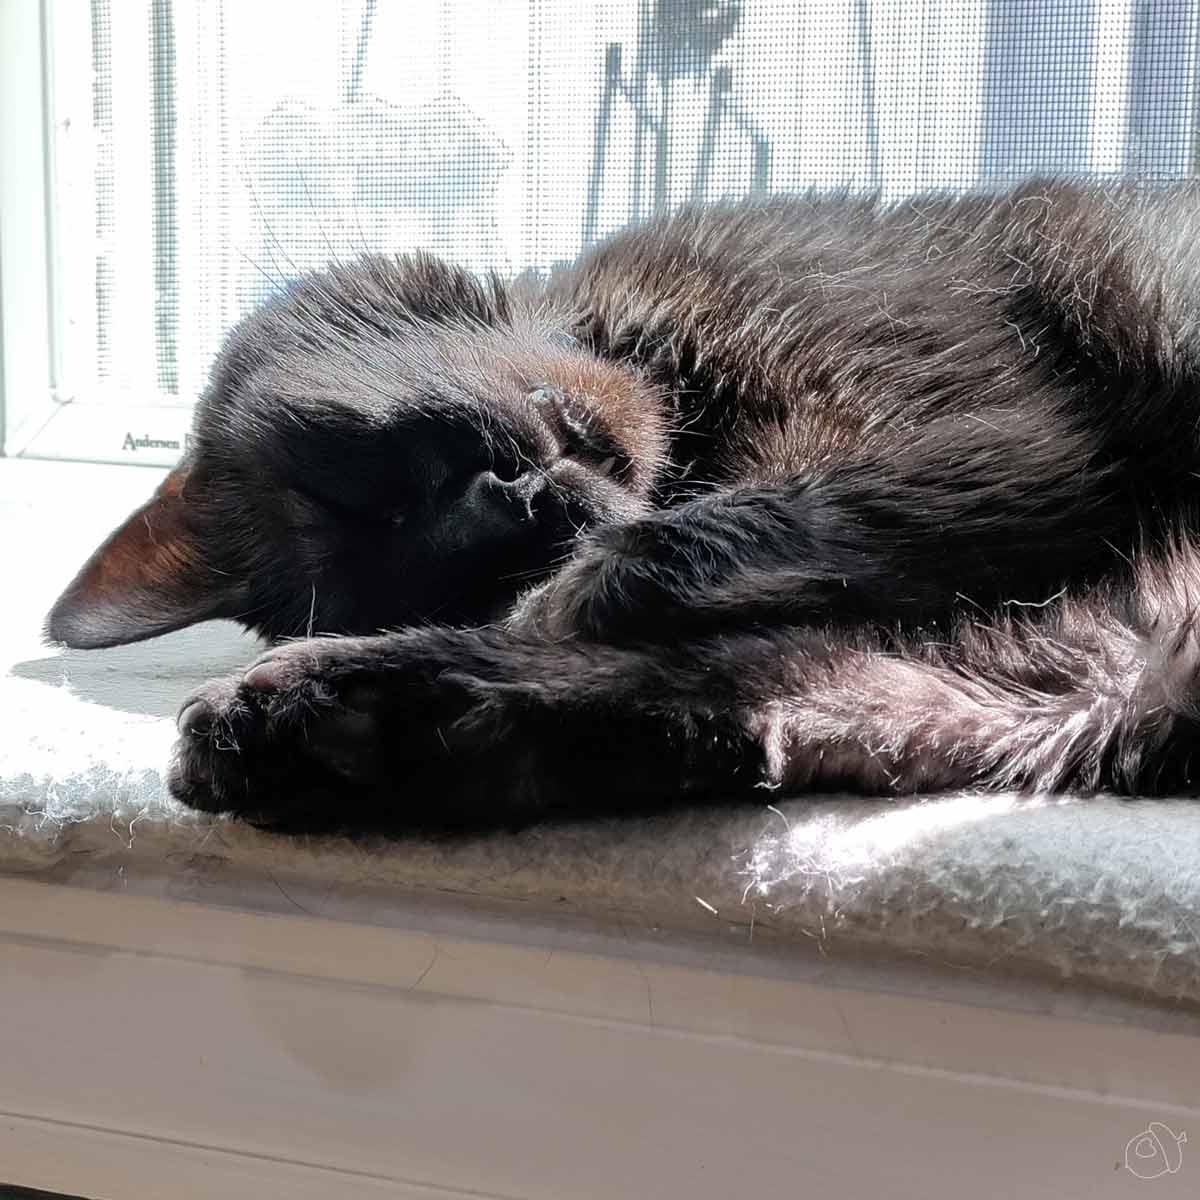 Black cat napping on a sunny windowsill. The image is cropped to show just his head, one back leg, and a front paw. One toothis sticking out as he dreams of catching chipmunks.